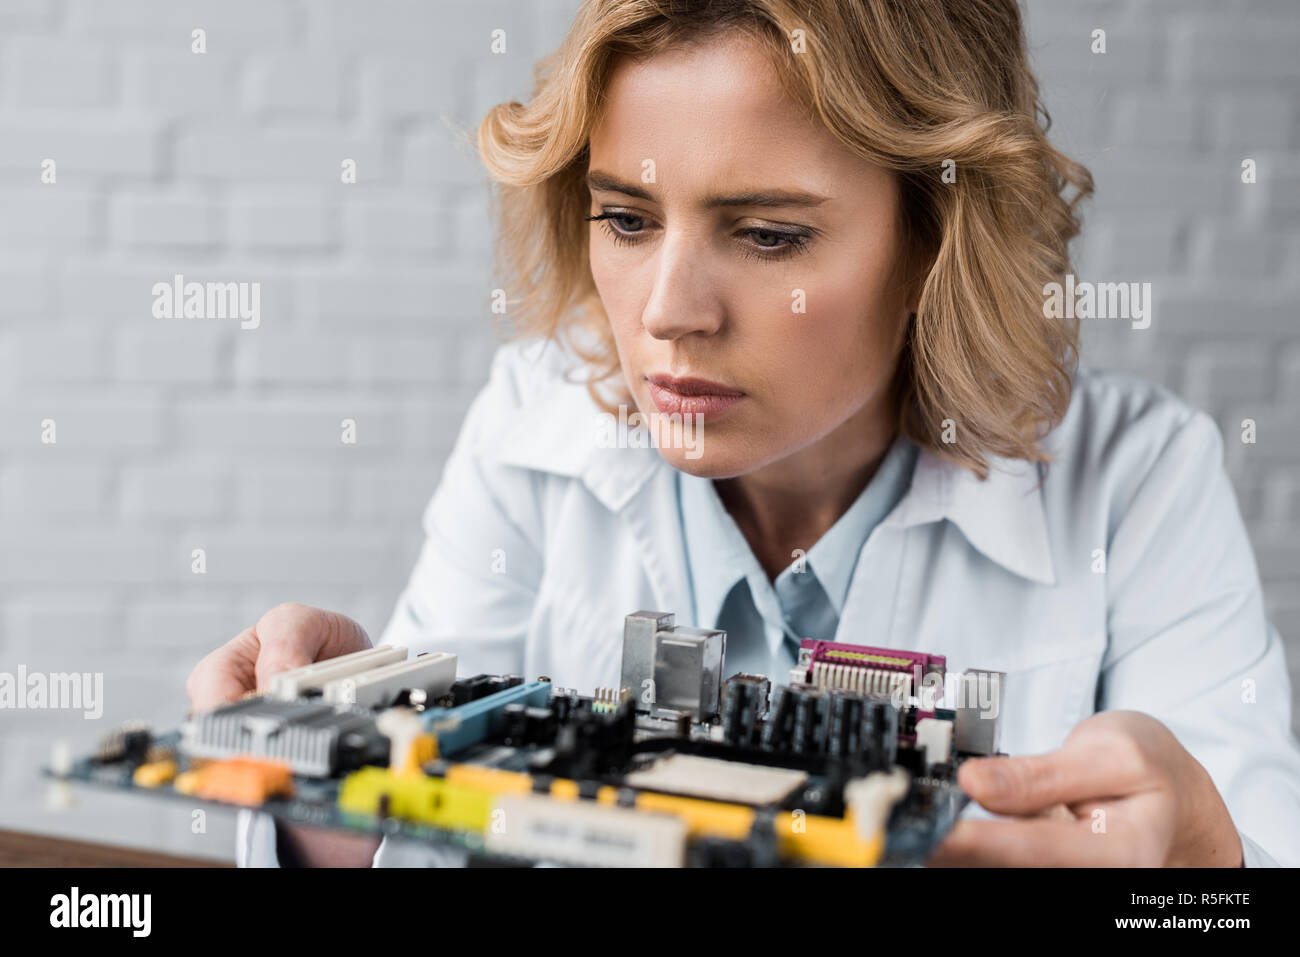 close-up portrait of female computer engineer holding motherboard - Stock Image